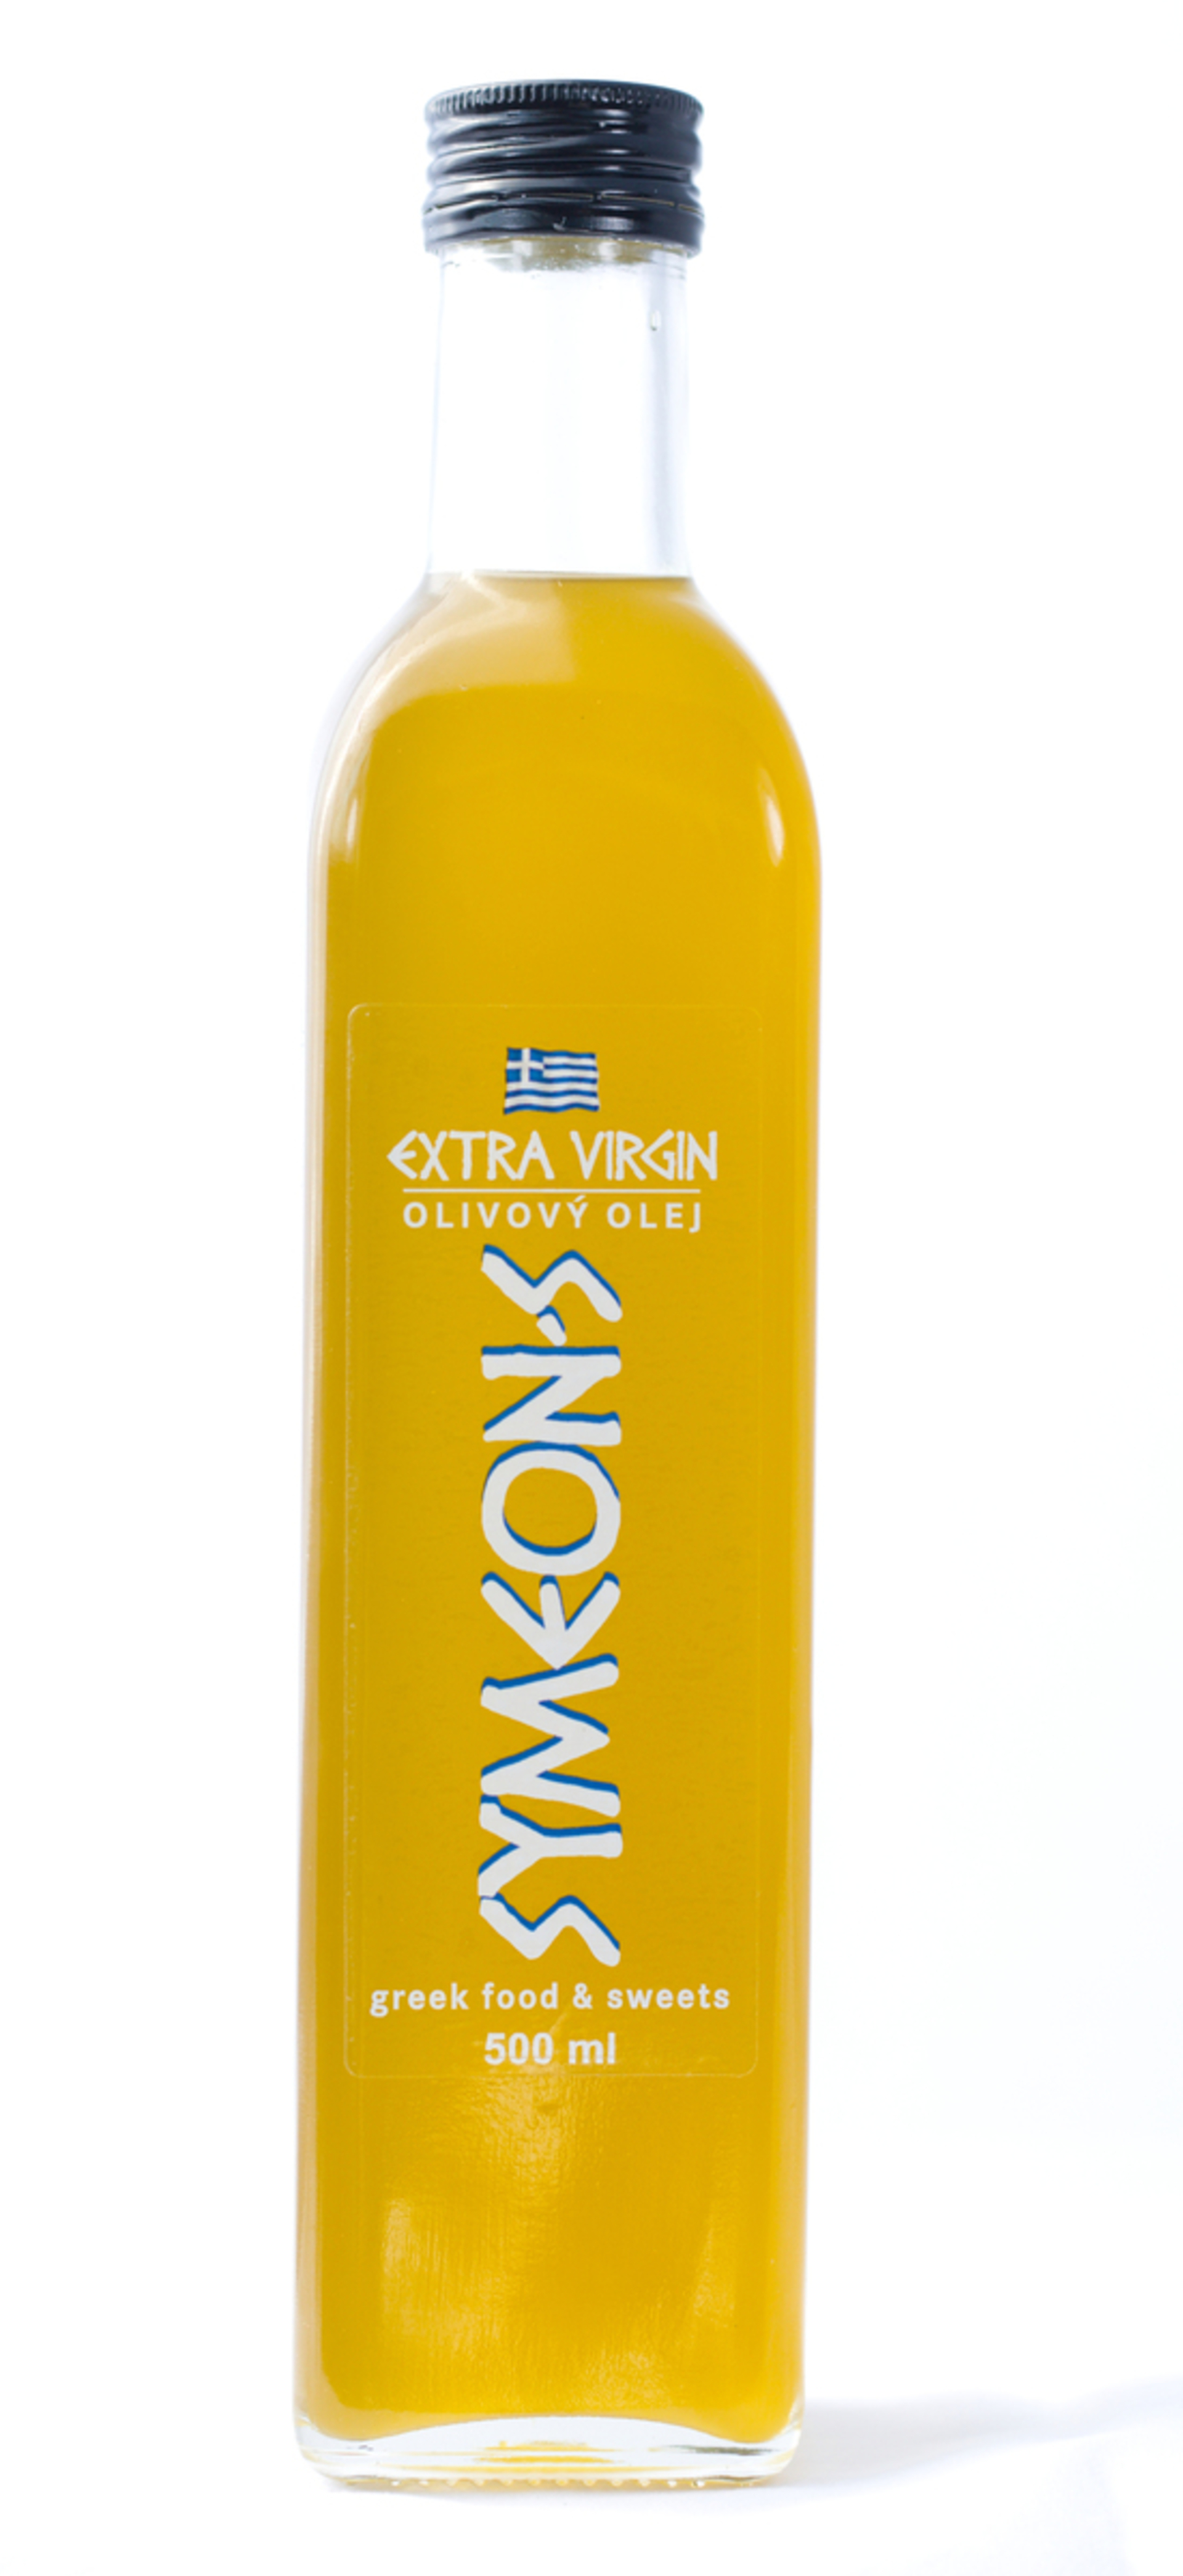 Symeons Olivový olej extra virgin 500 ml